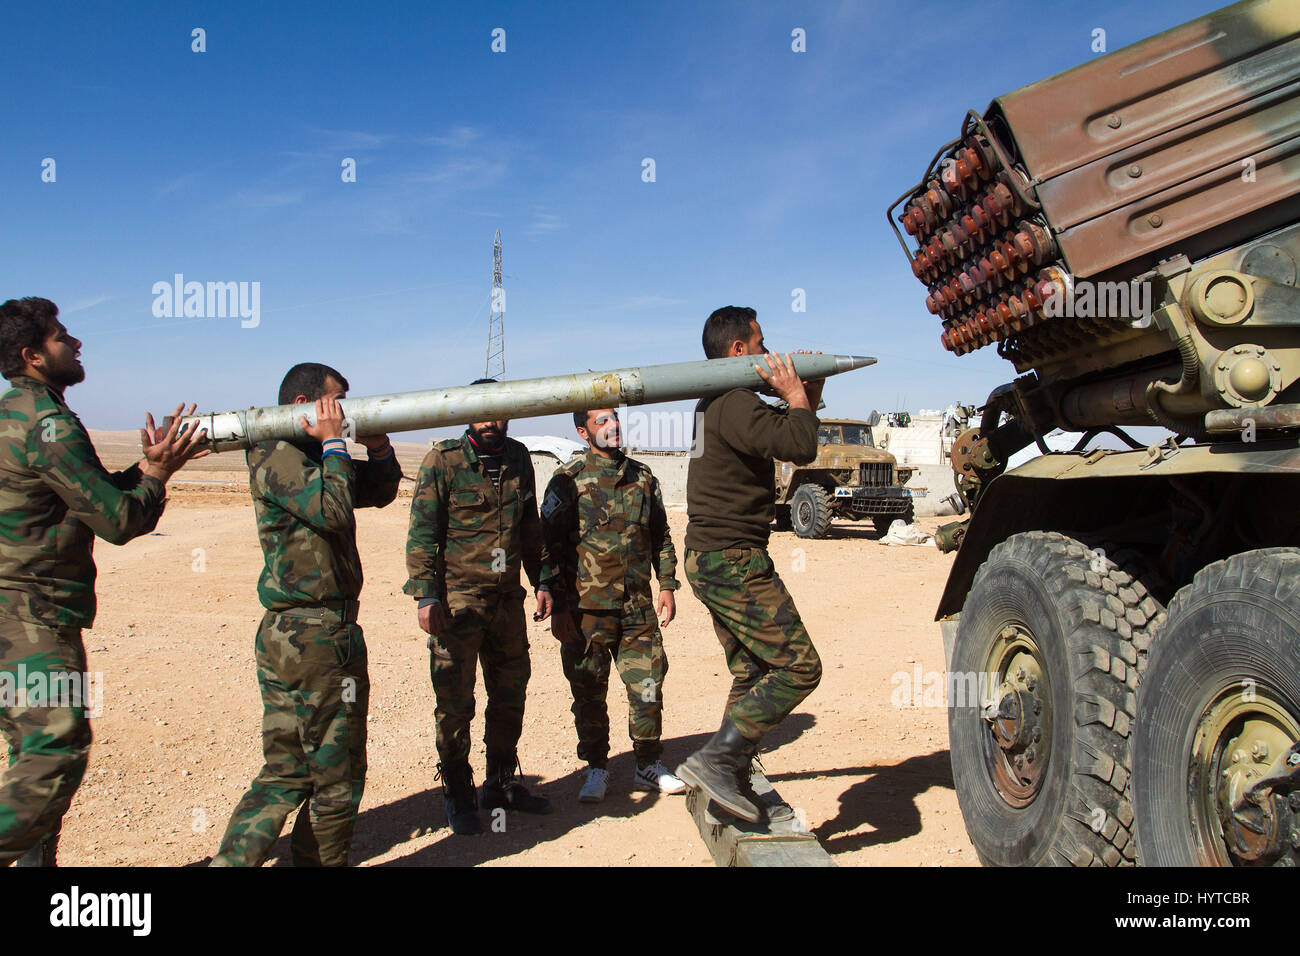 Surian army multiple rocket launcher - Stock Image